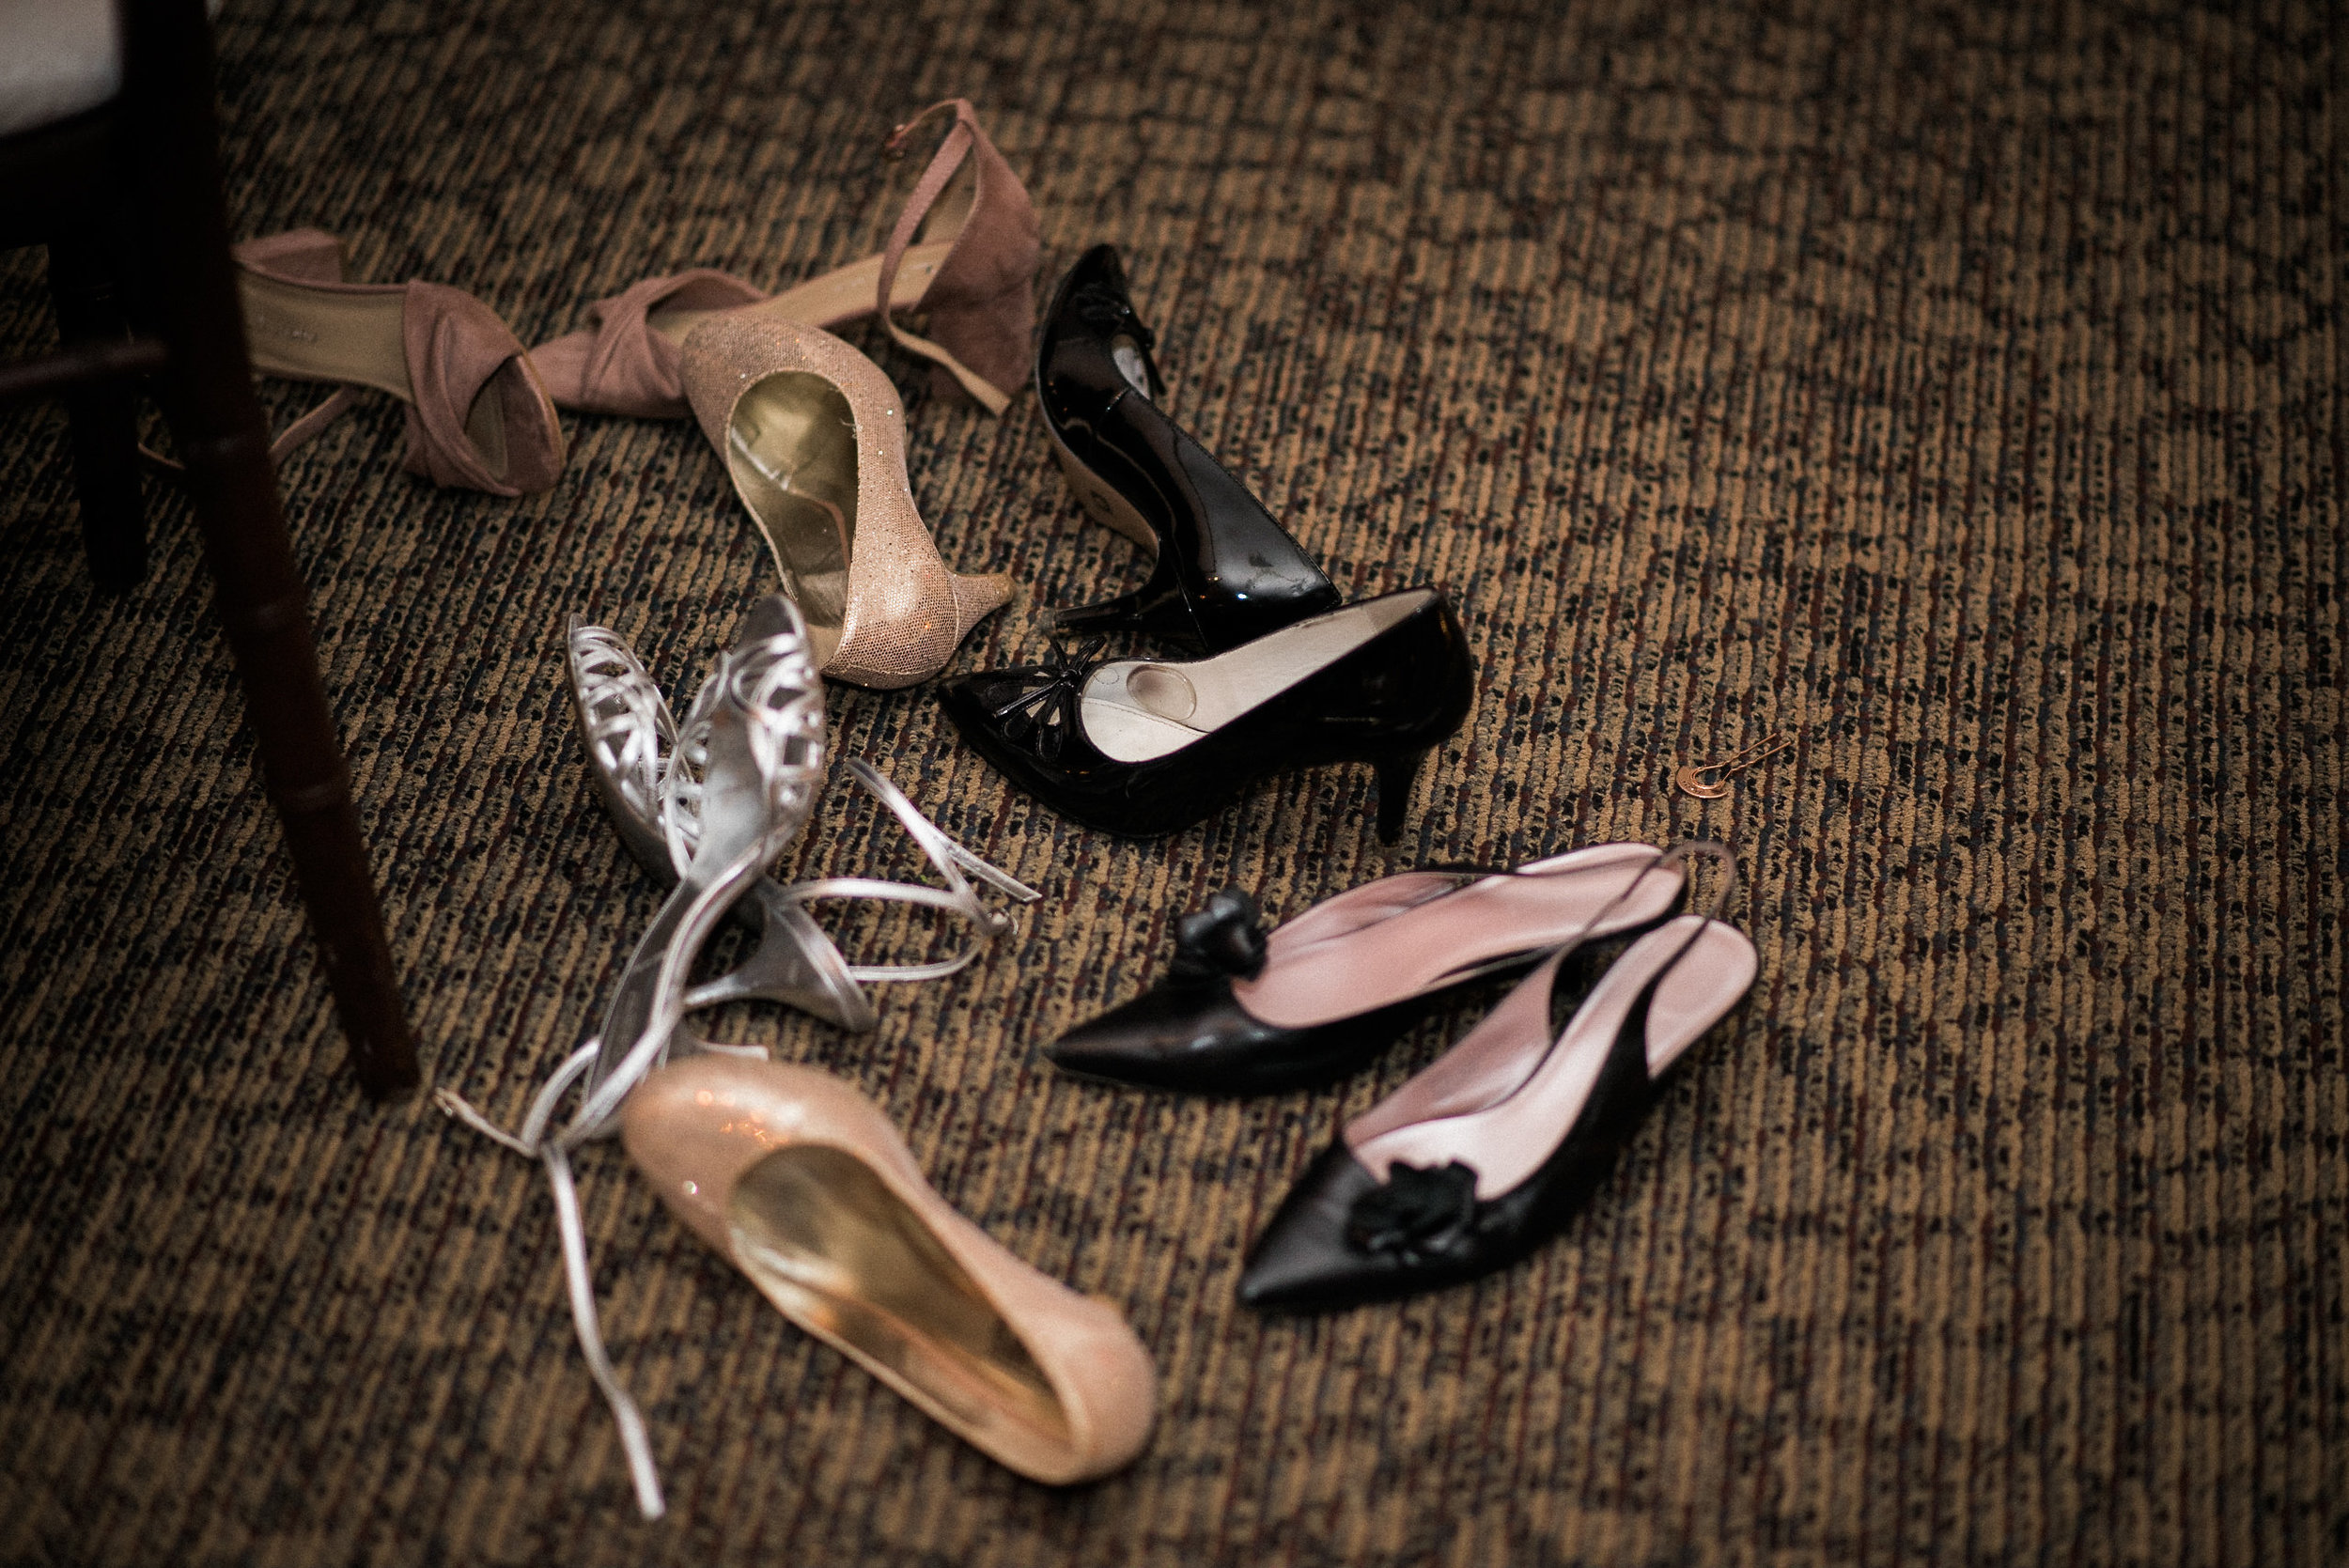 Shoes in a pile on the floor